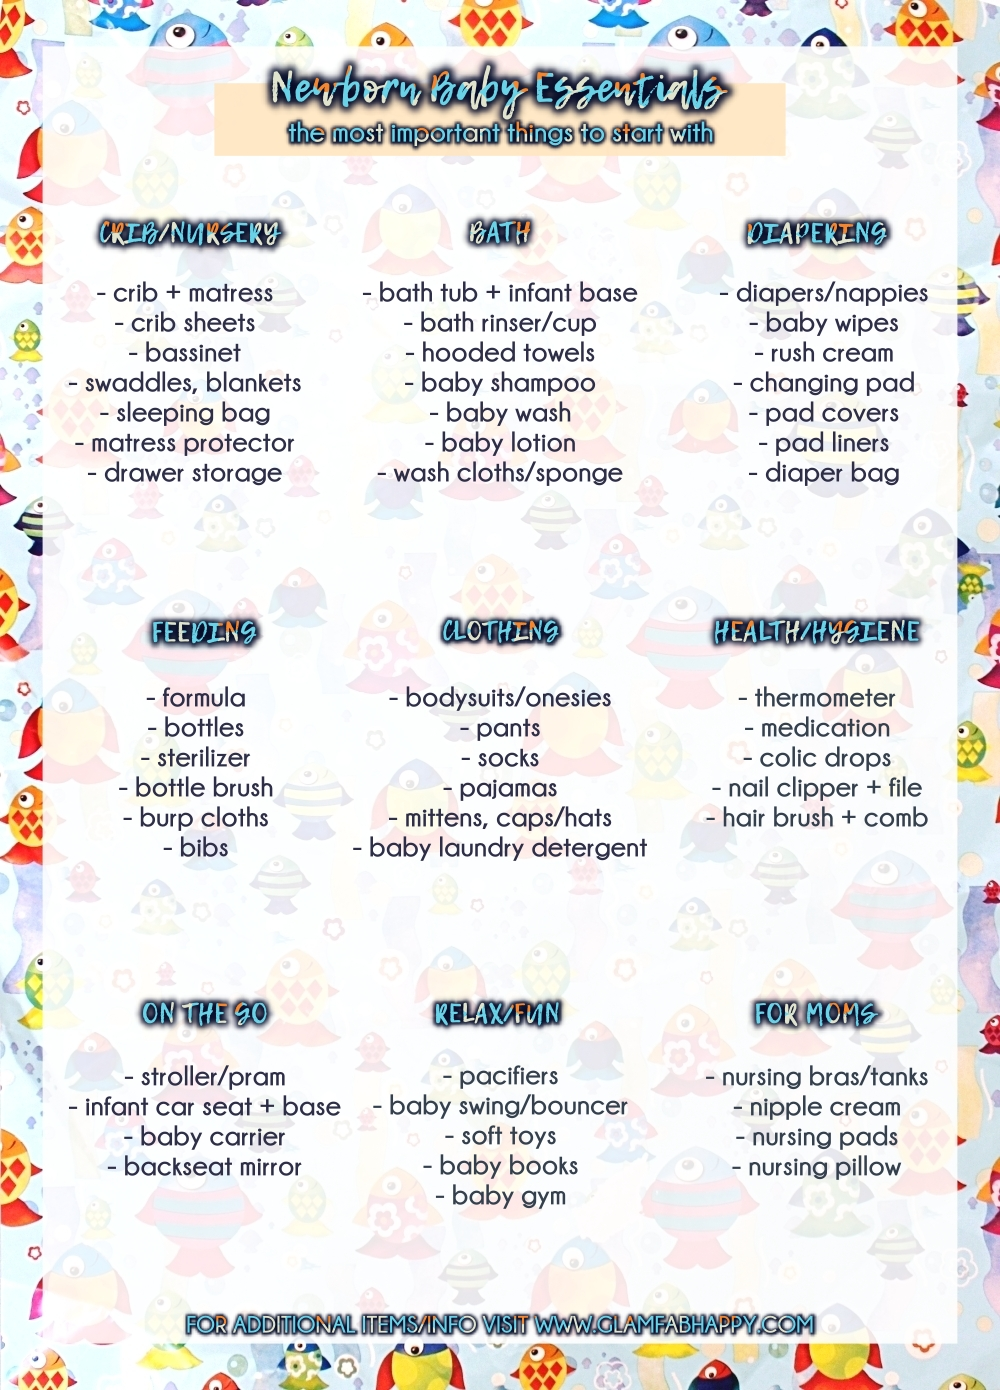 newborn baby essentials checklist, minimalistic baby essentials list